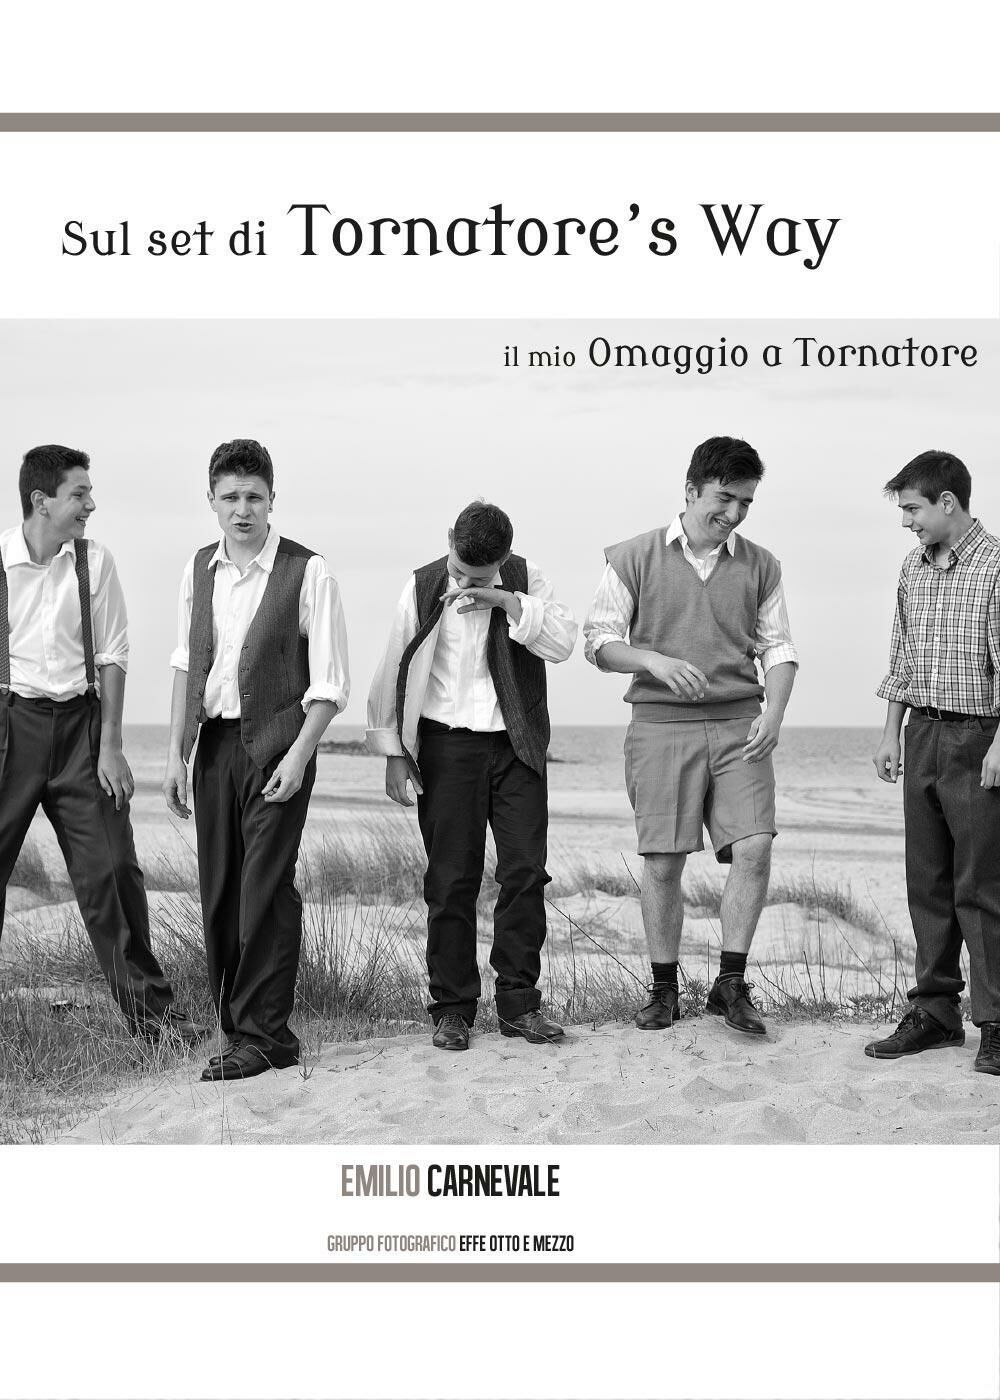 Sul set di Tornatore's way